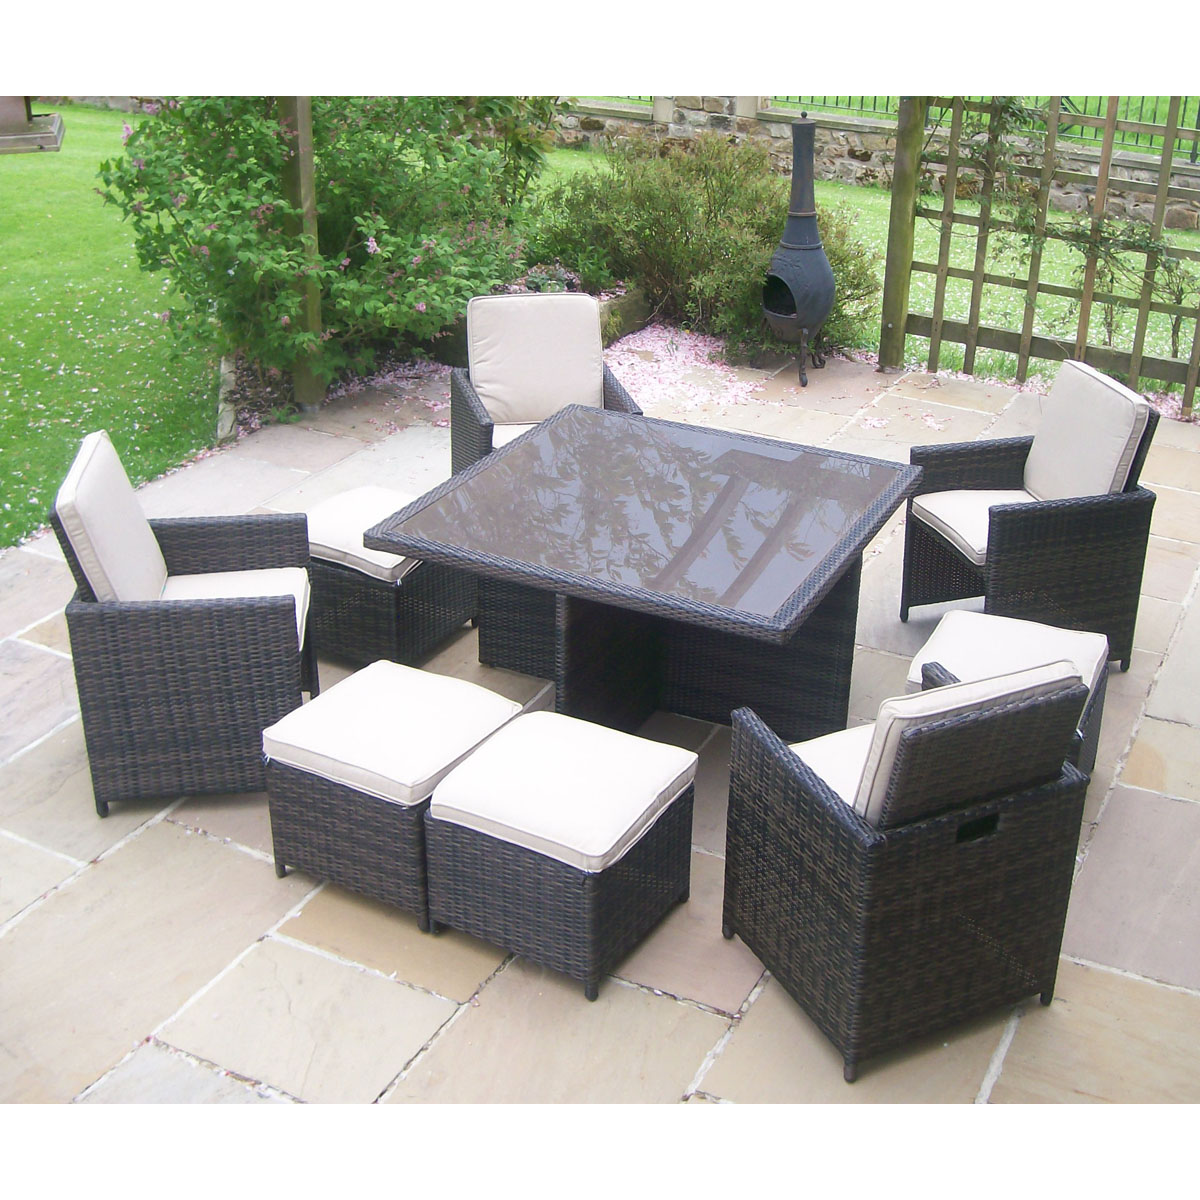 Rattan wicker garden furniture table 4 chair patio set ebay for Garden patio sets